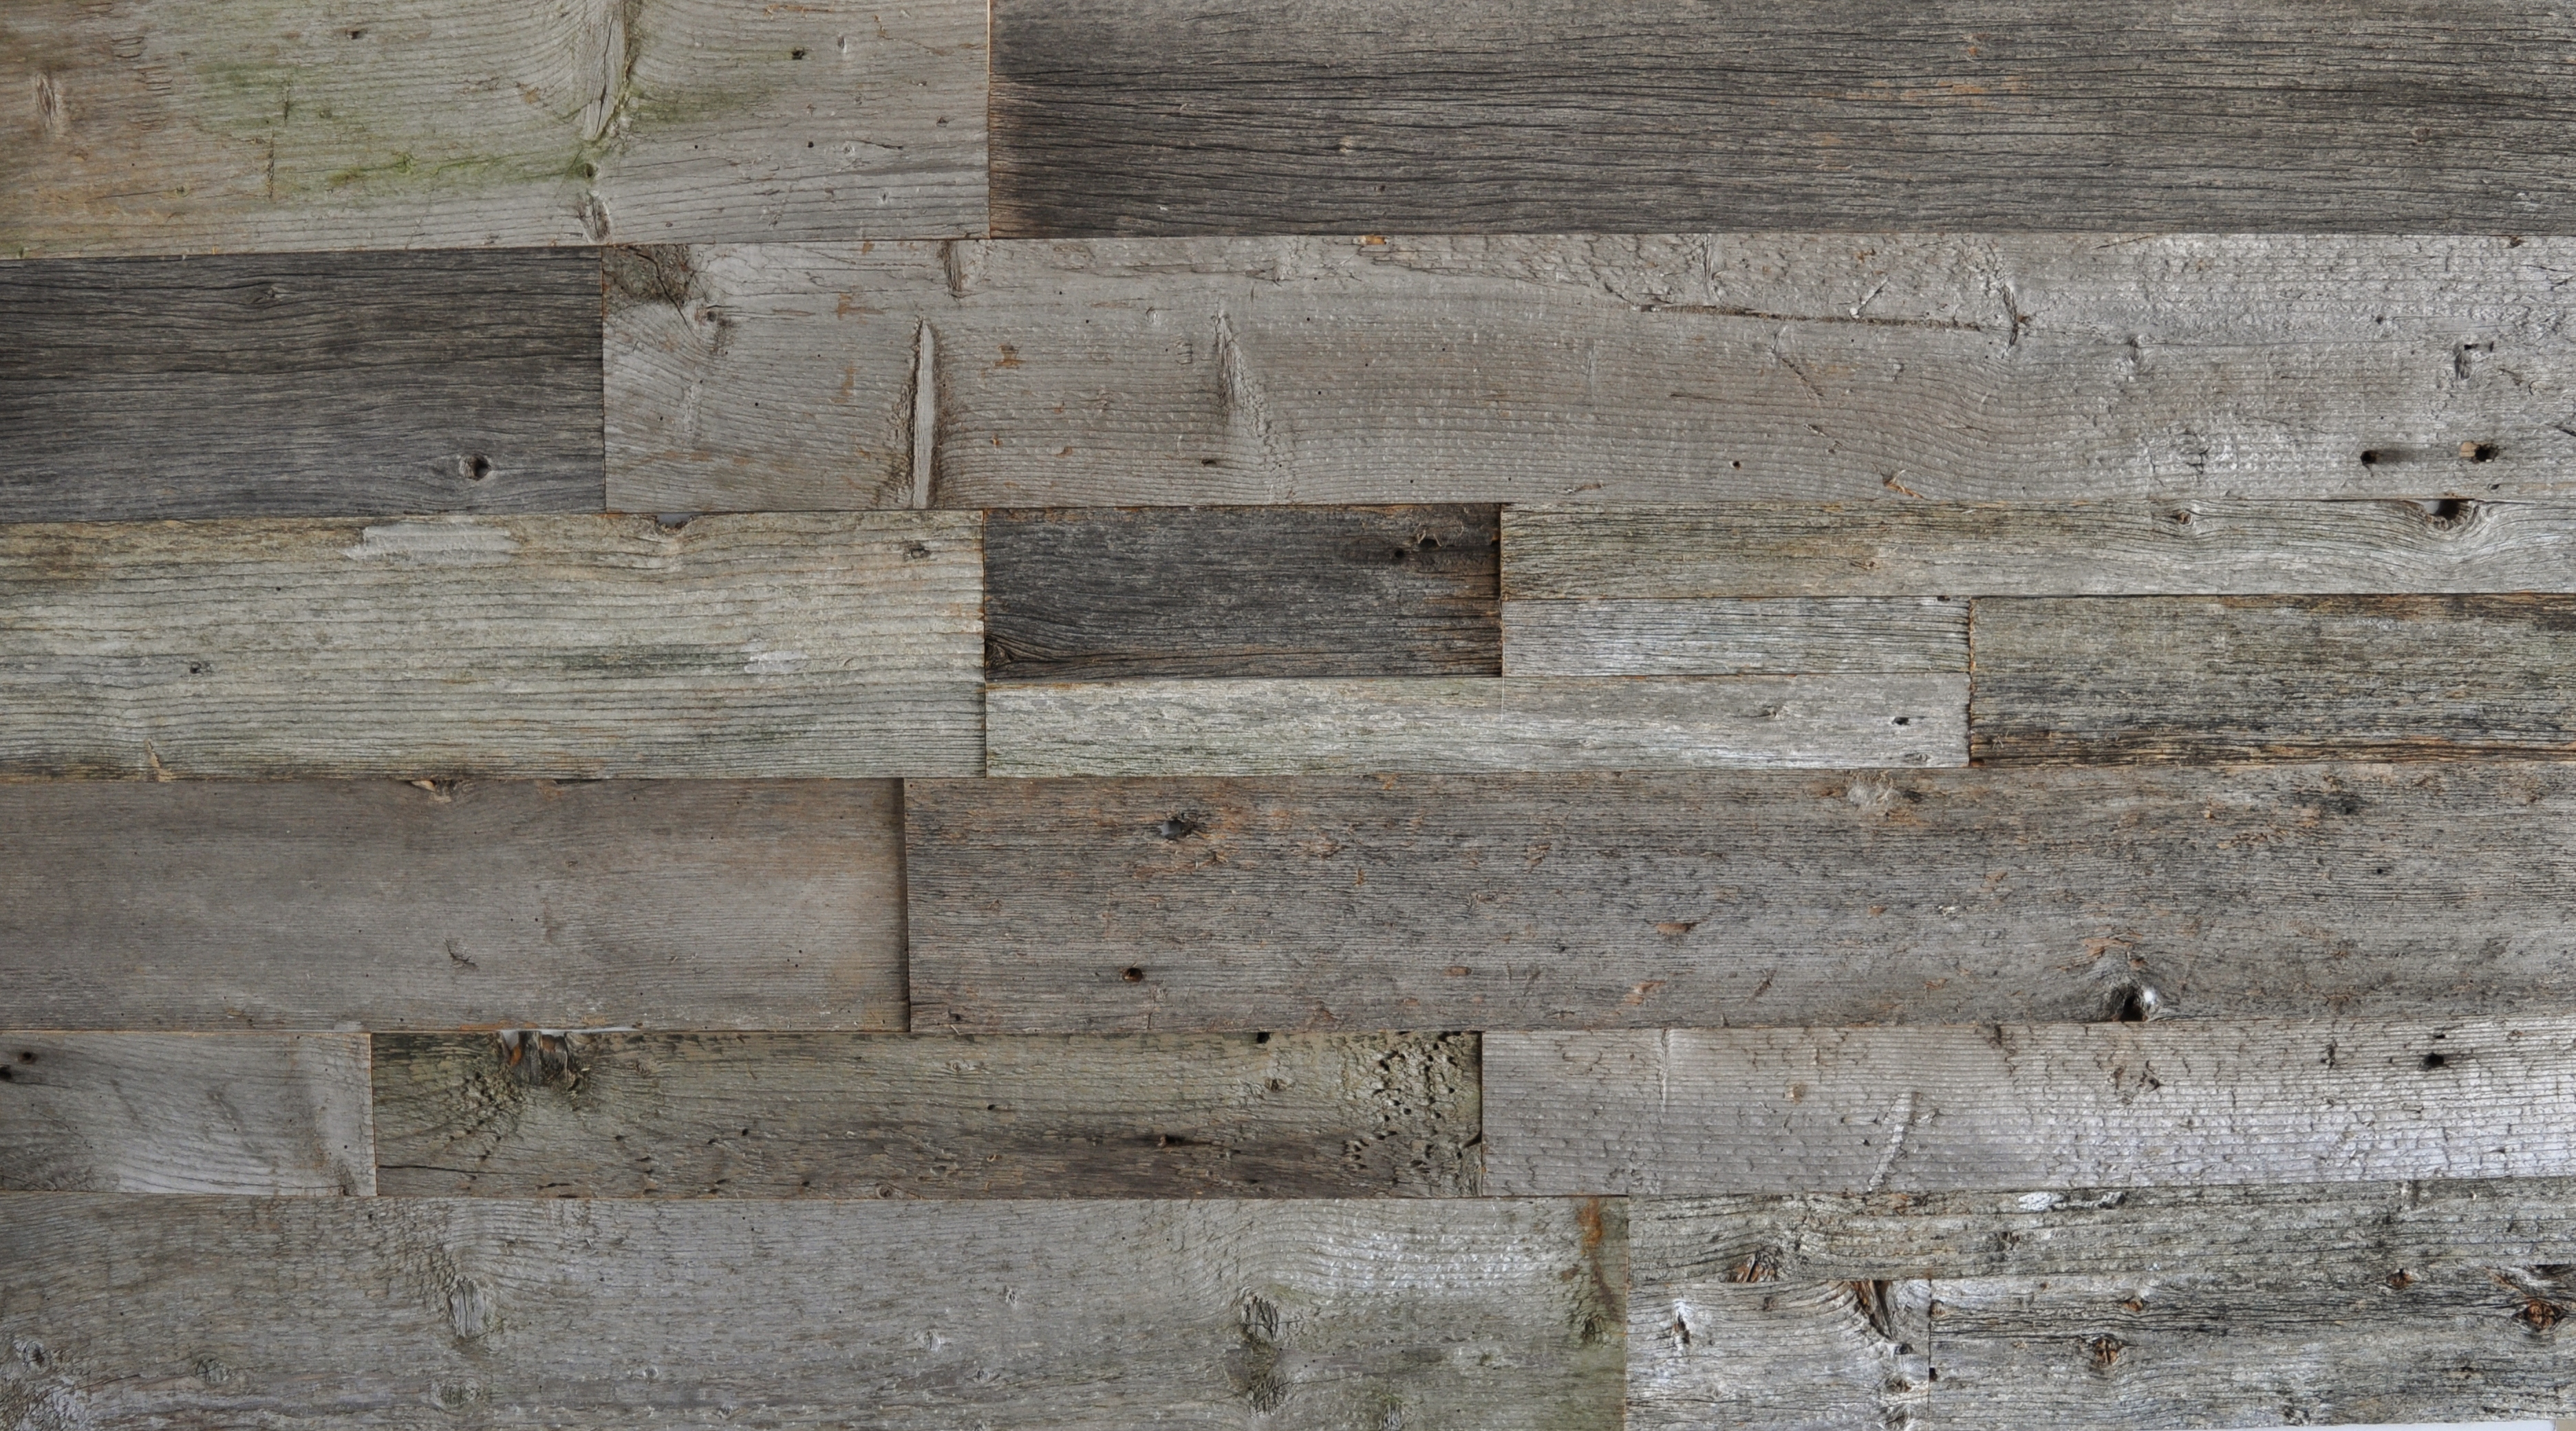 Diy reclaimed wood accent wall grey shades mixed widths Reclaimed woods